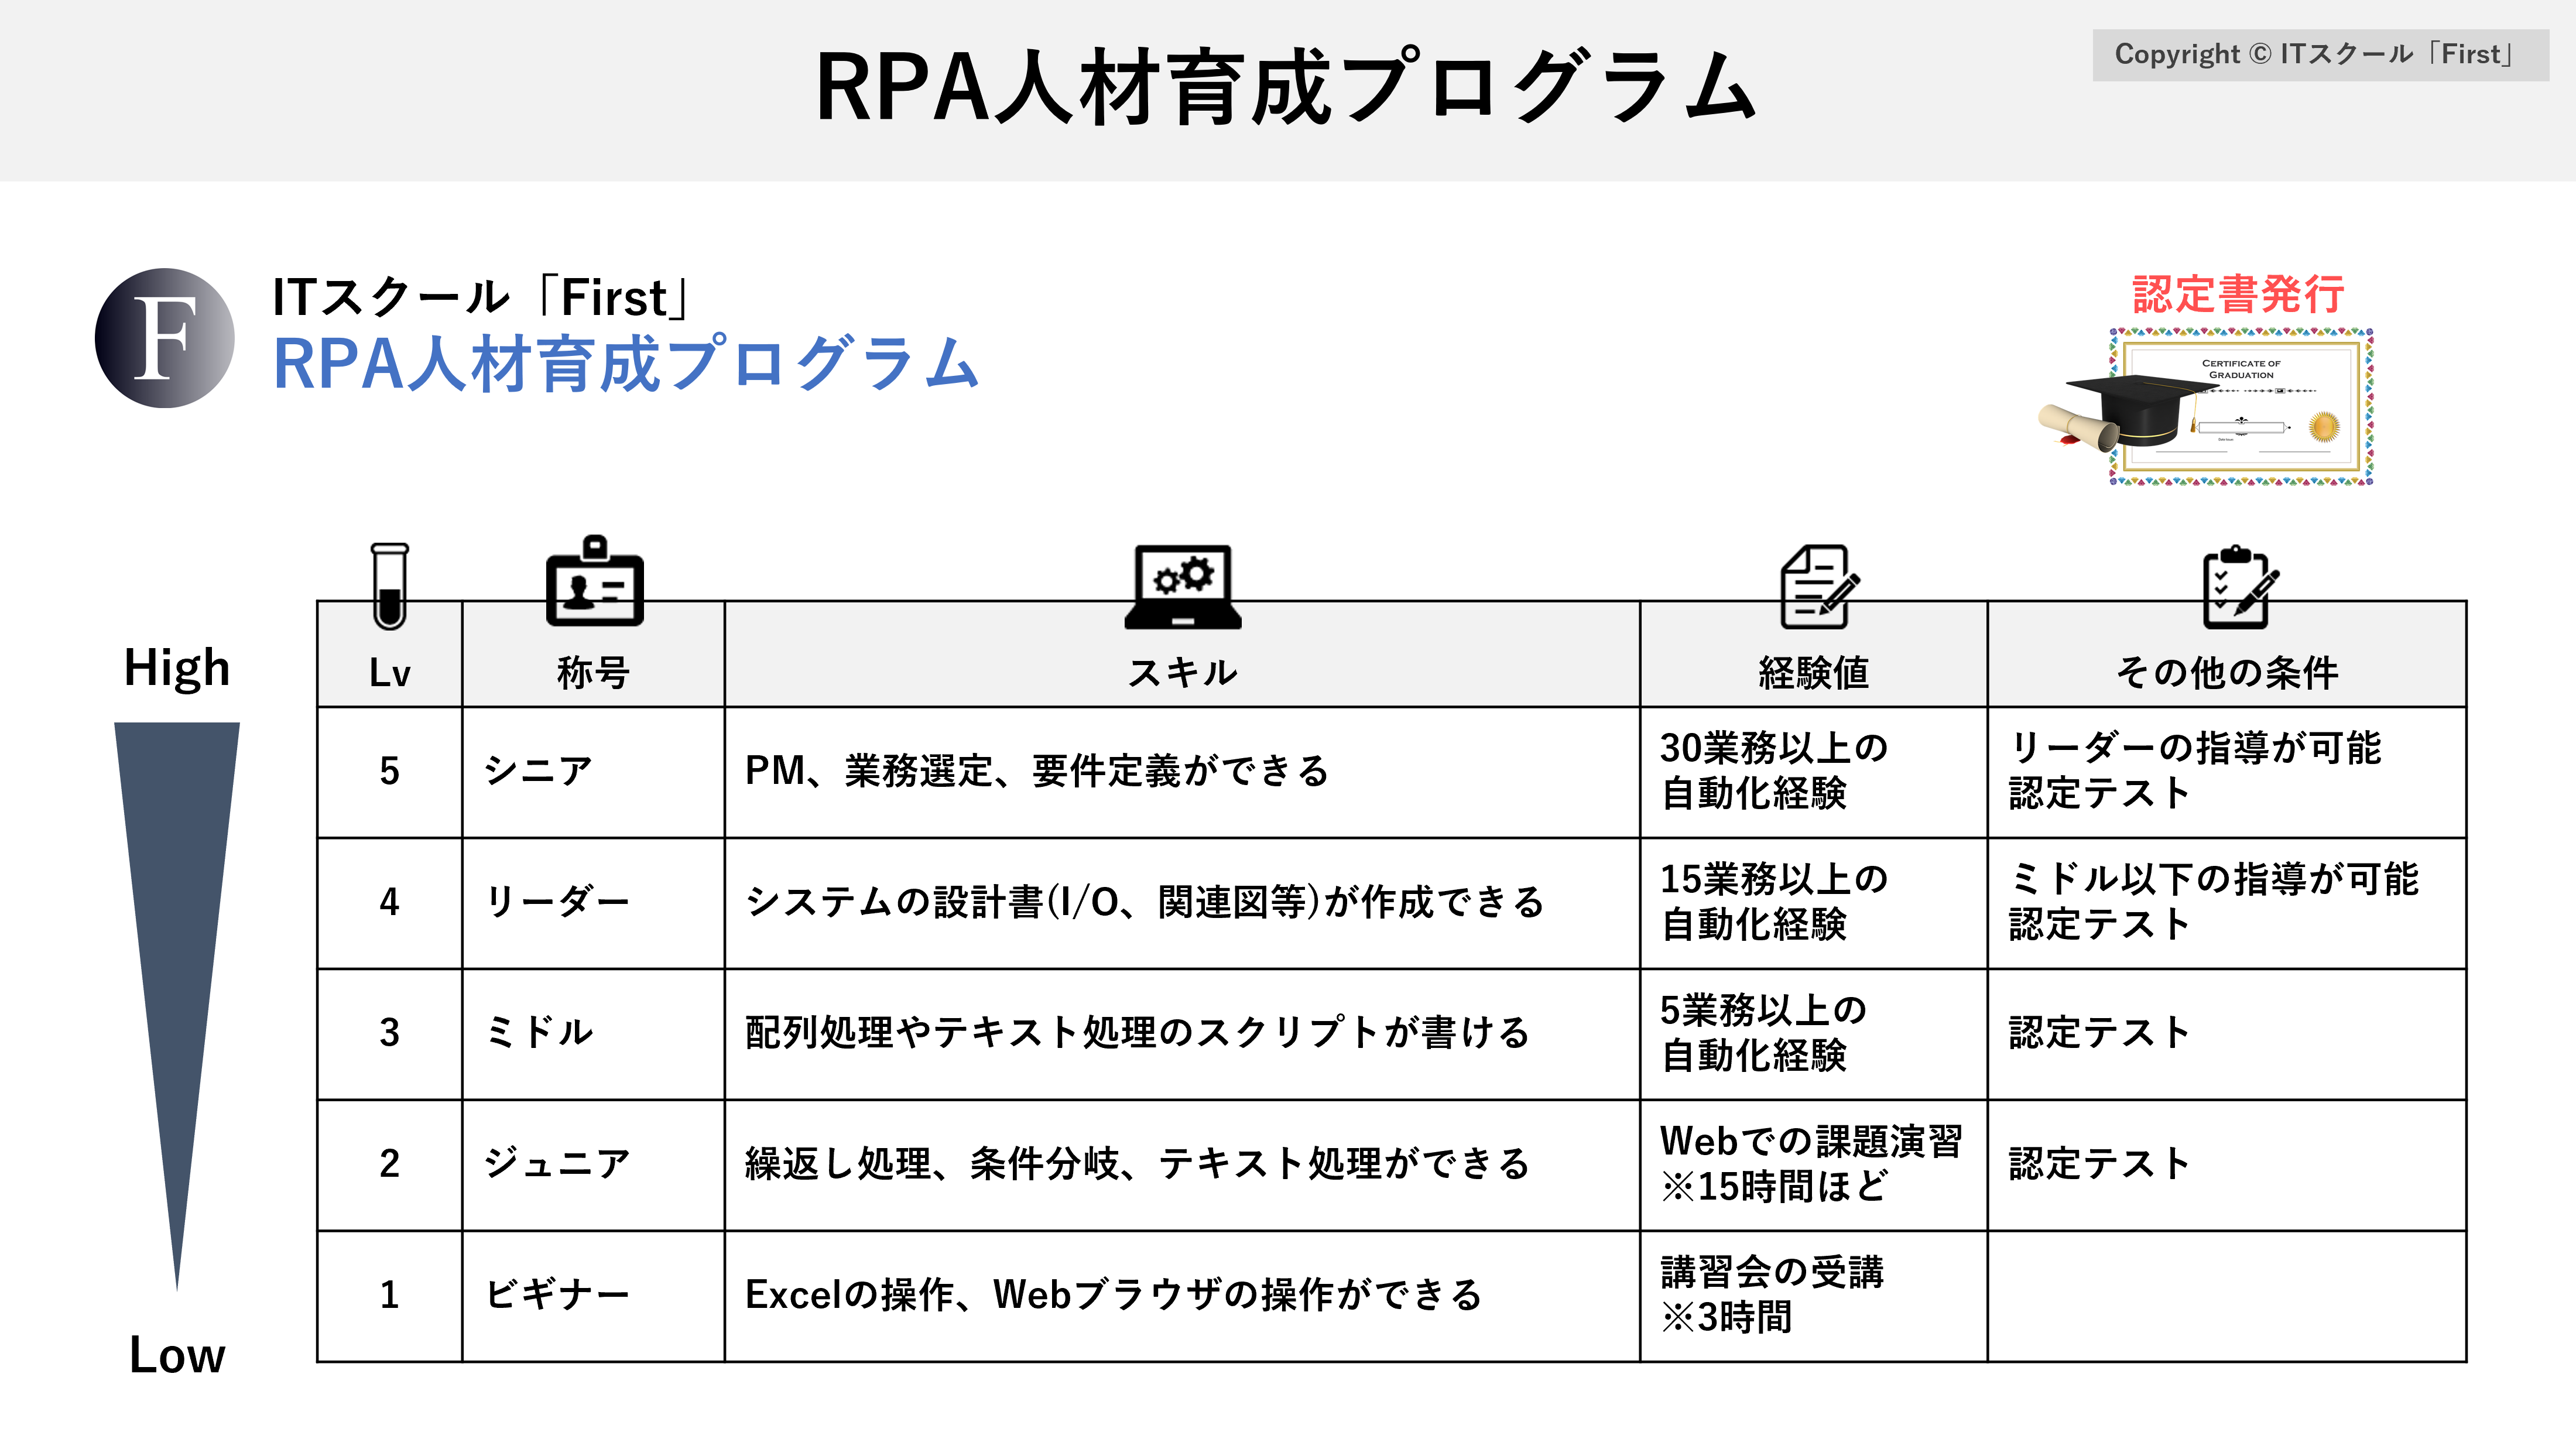 rpa personnel training